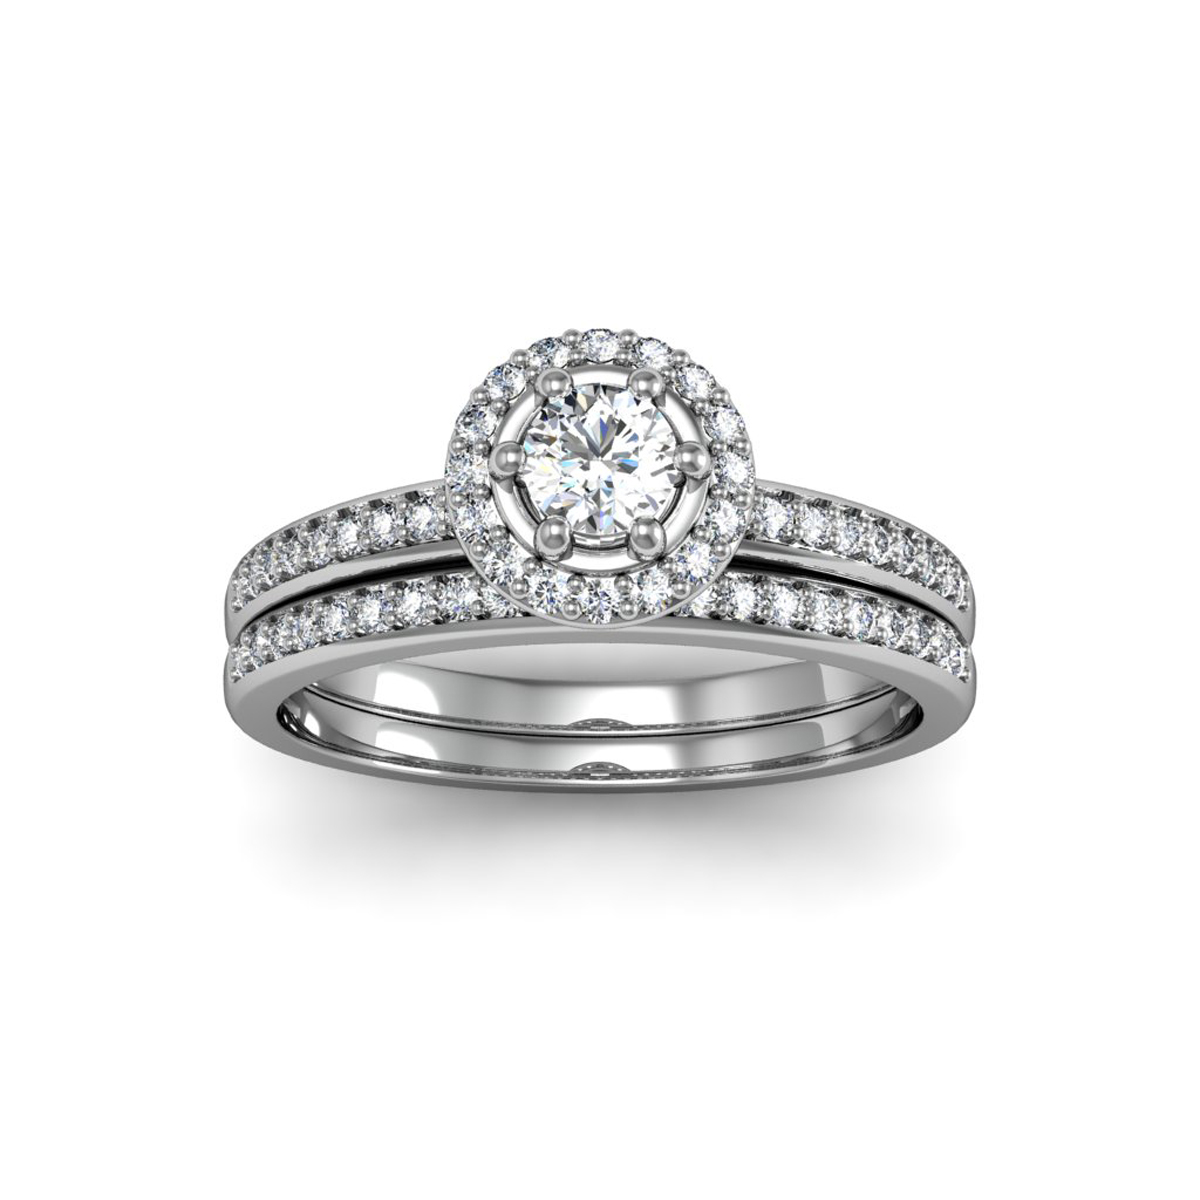 1 2ct Pave Diamond Bridal Set, Round Center